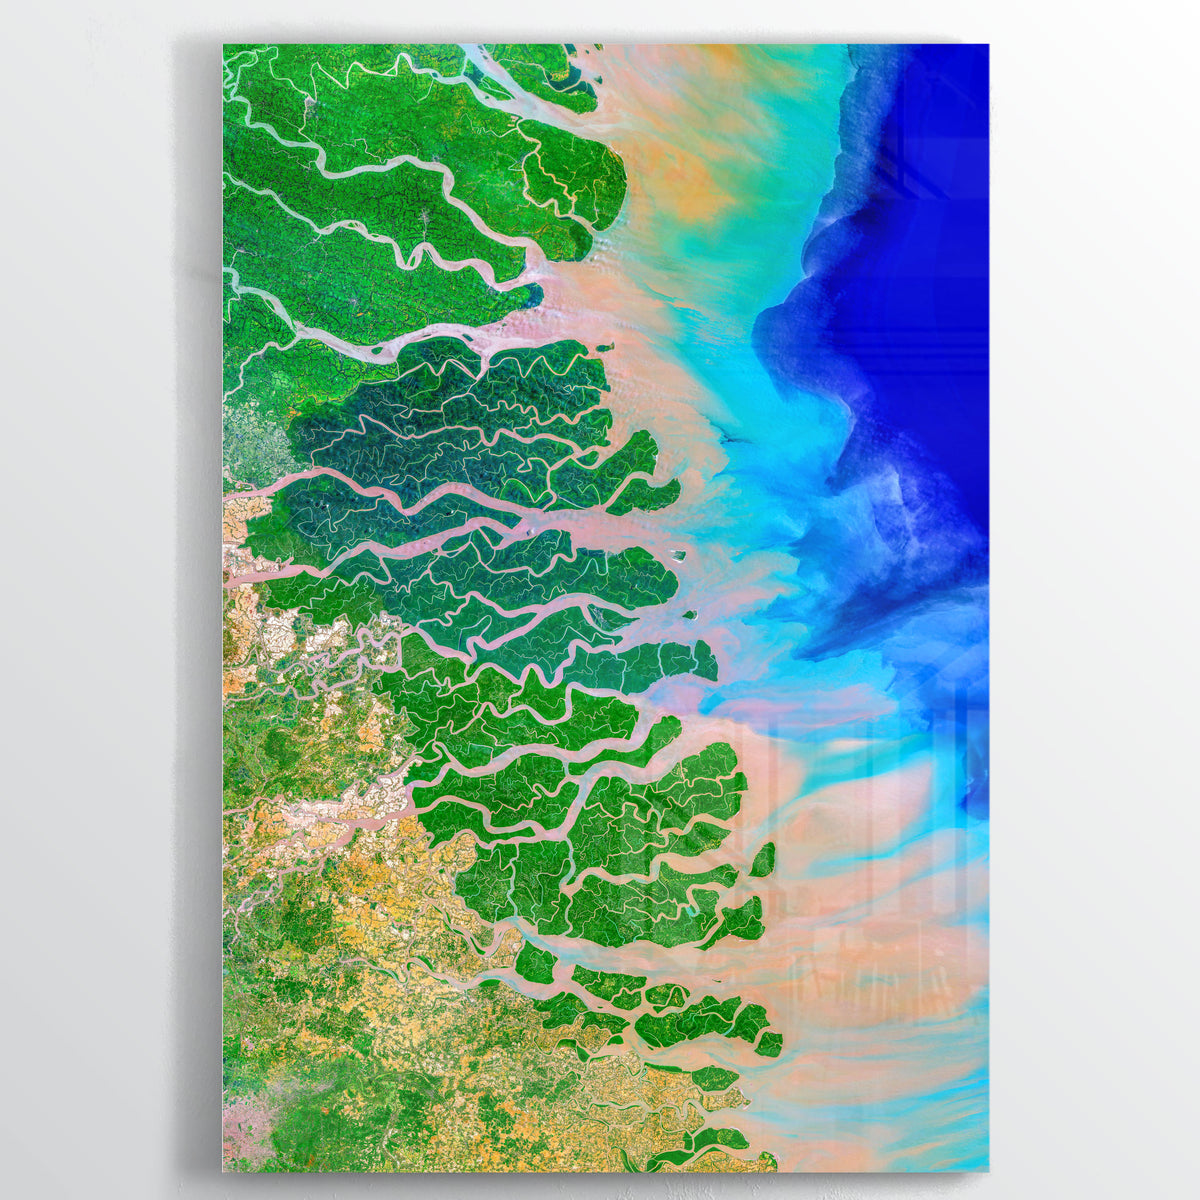 Ganges-Brahmaputra Delta Earth Photography - Acrylic - Point Two Design